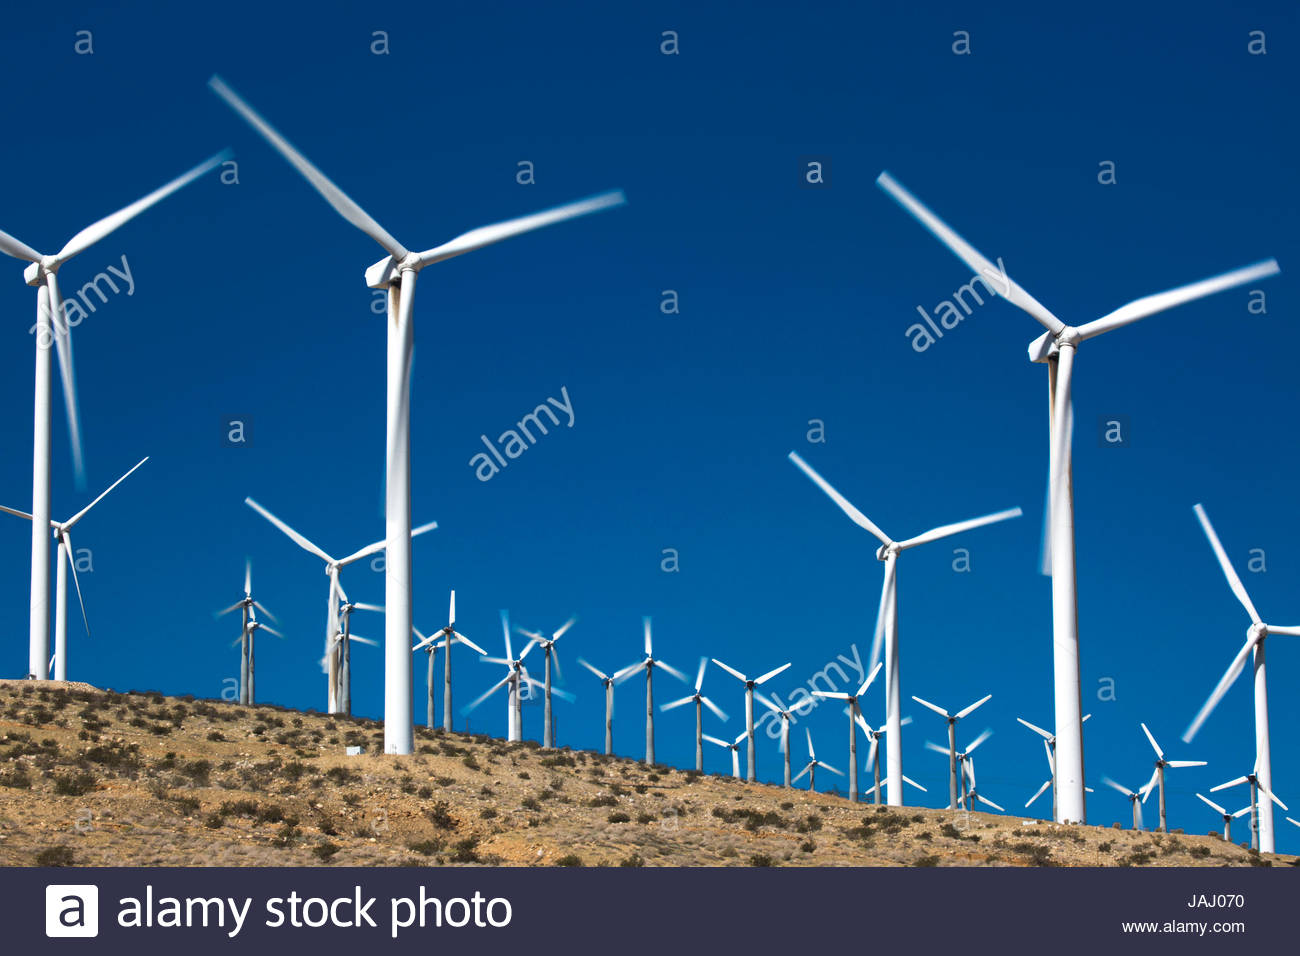 A portion of the more than 3,000 wind turbines at the San Gorgonio Pass Wind Farm outside Palm Springs, California. - Stock Image